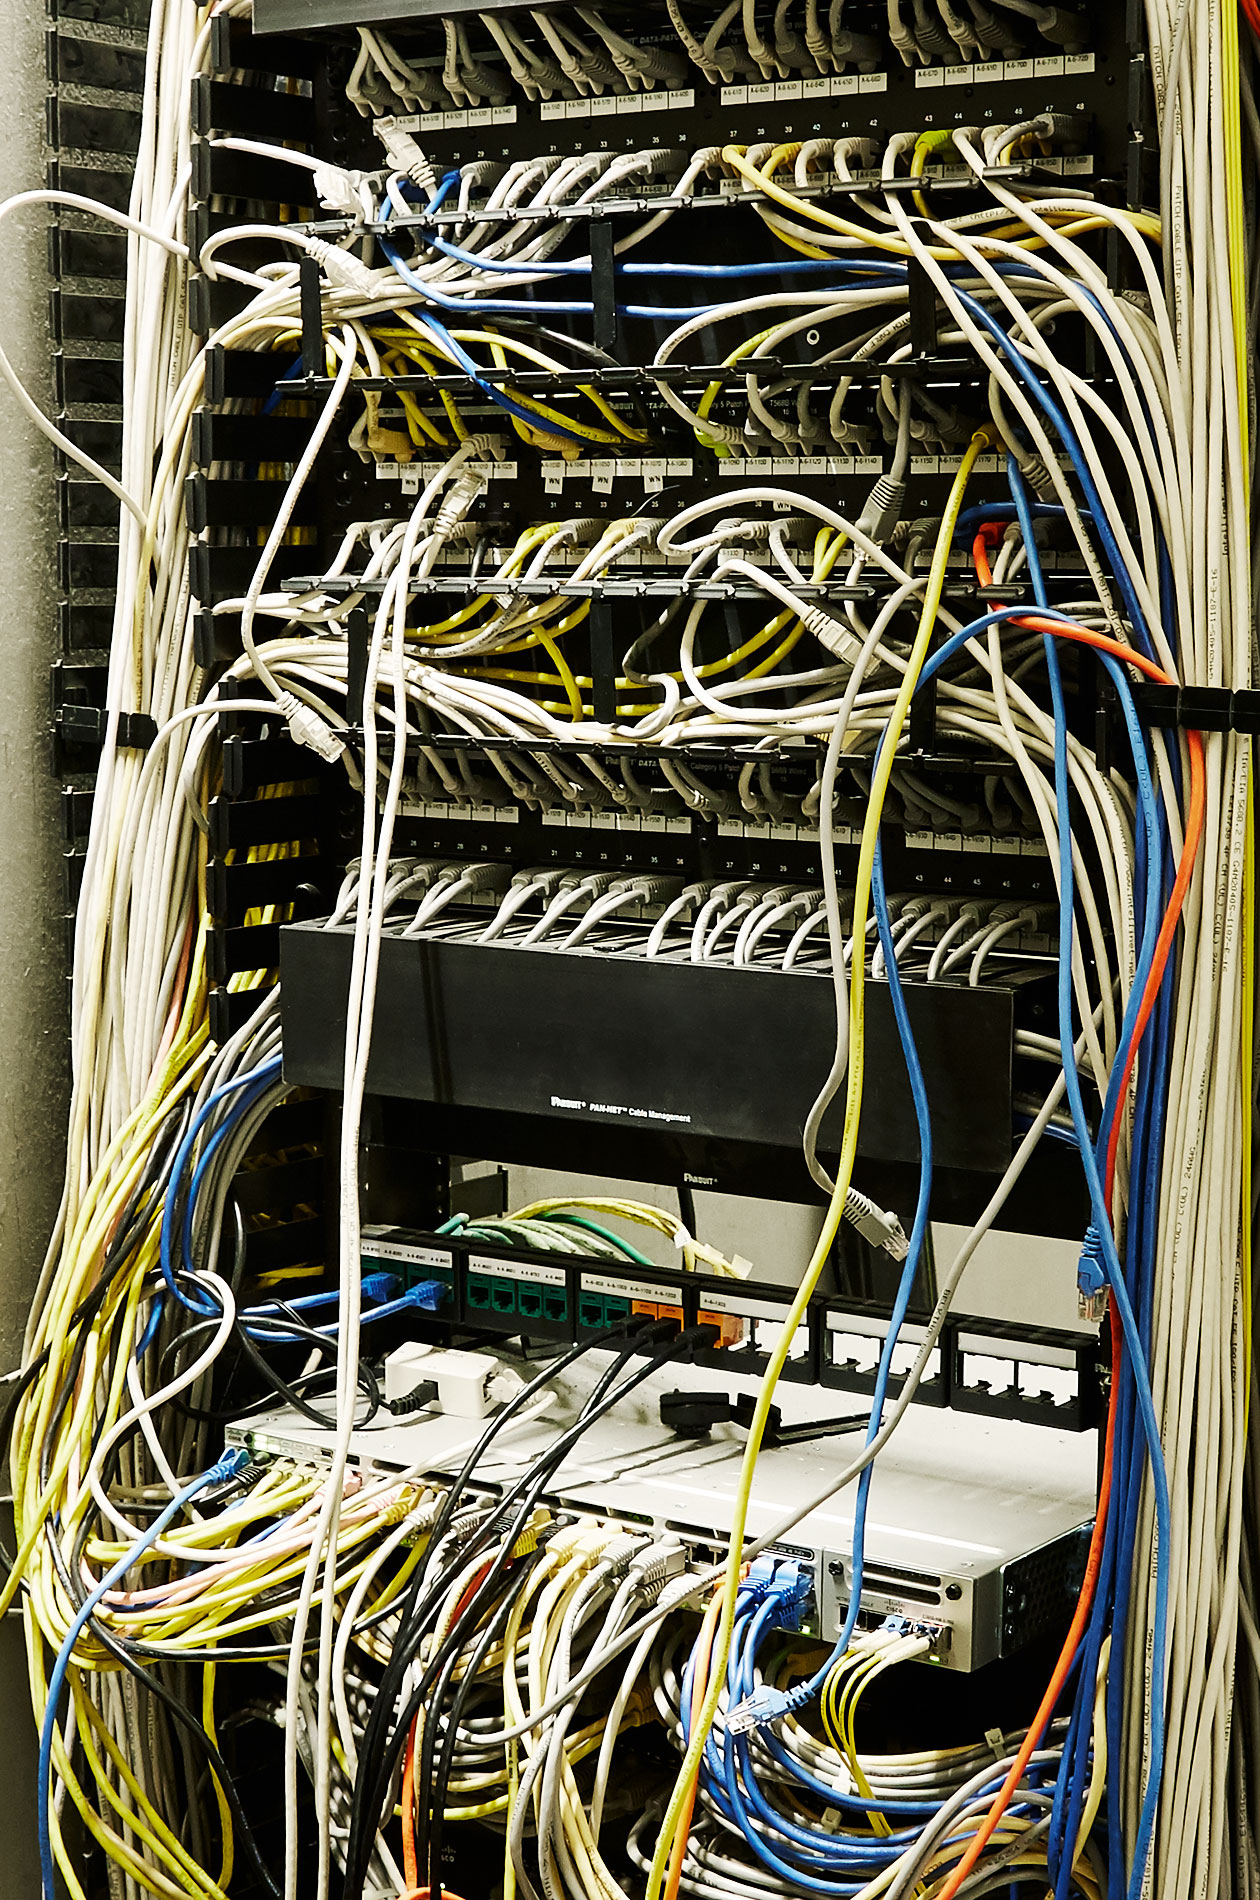 Server wires at Xcel Center - Steve Craft Photography - Phoenix Arizona Corporate Photographer